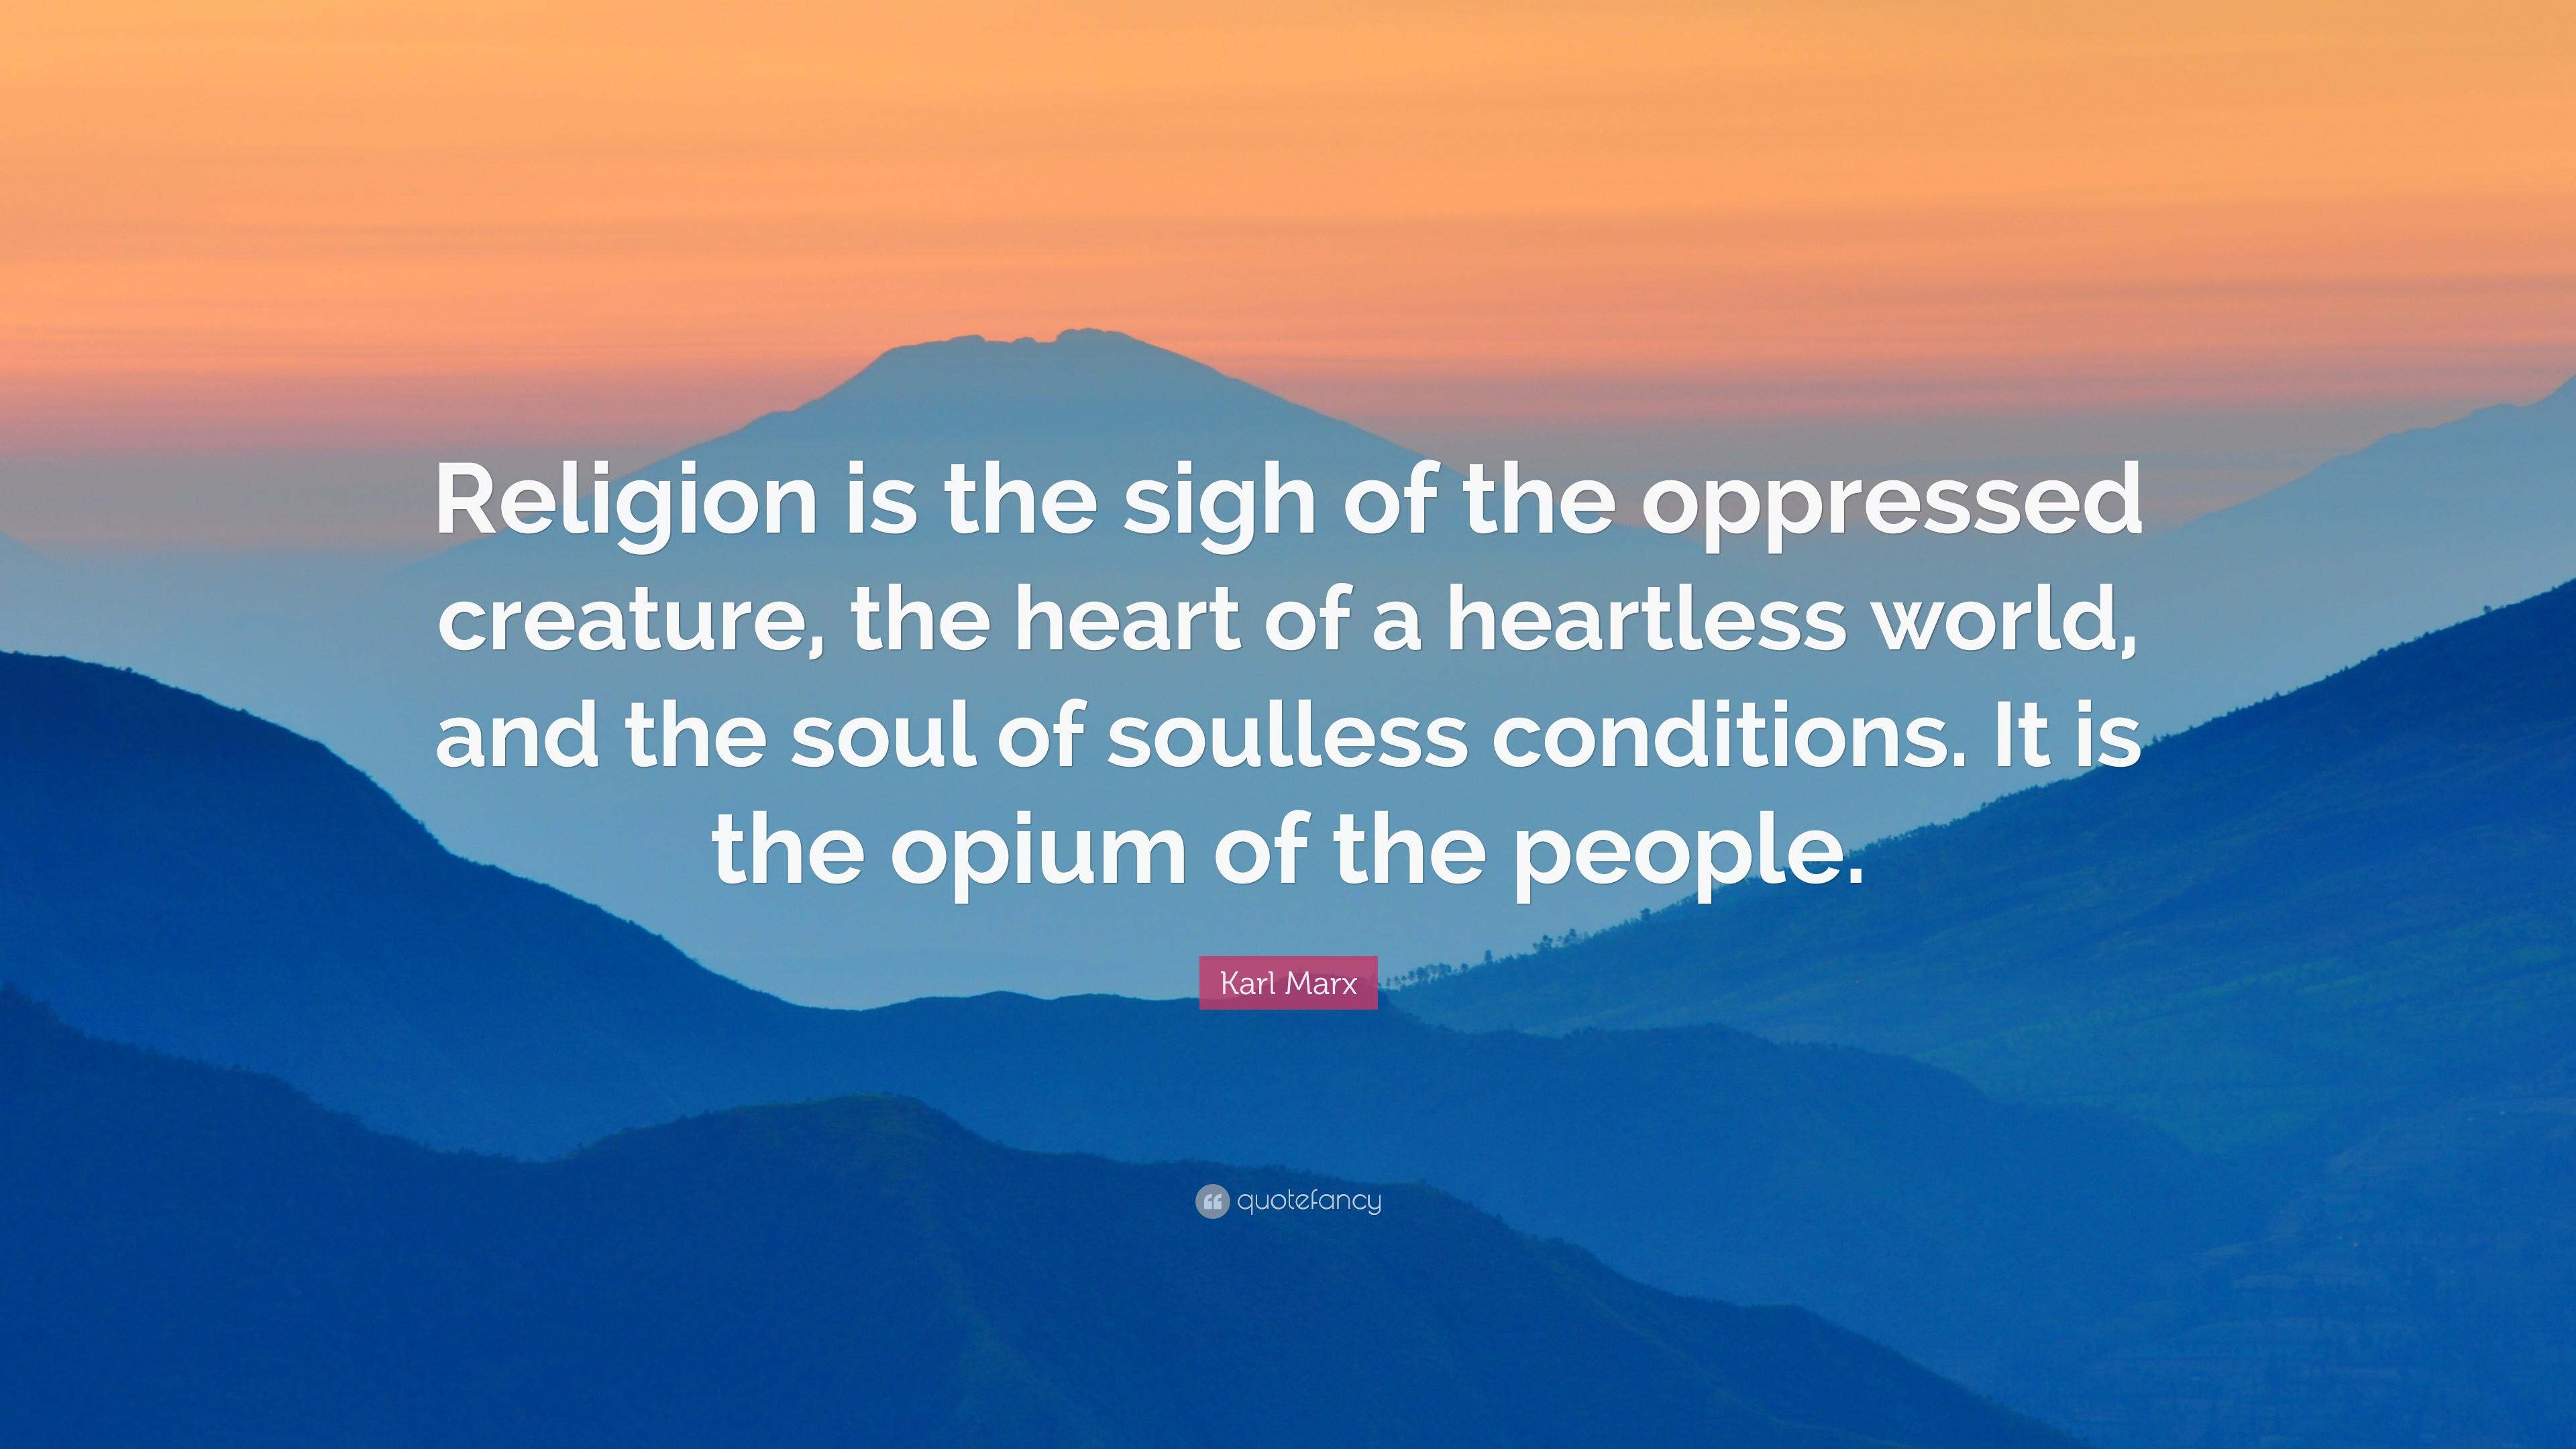 """Religion is the opiate of the masses"" (Karl Marx) Essay Sample"